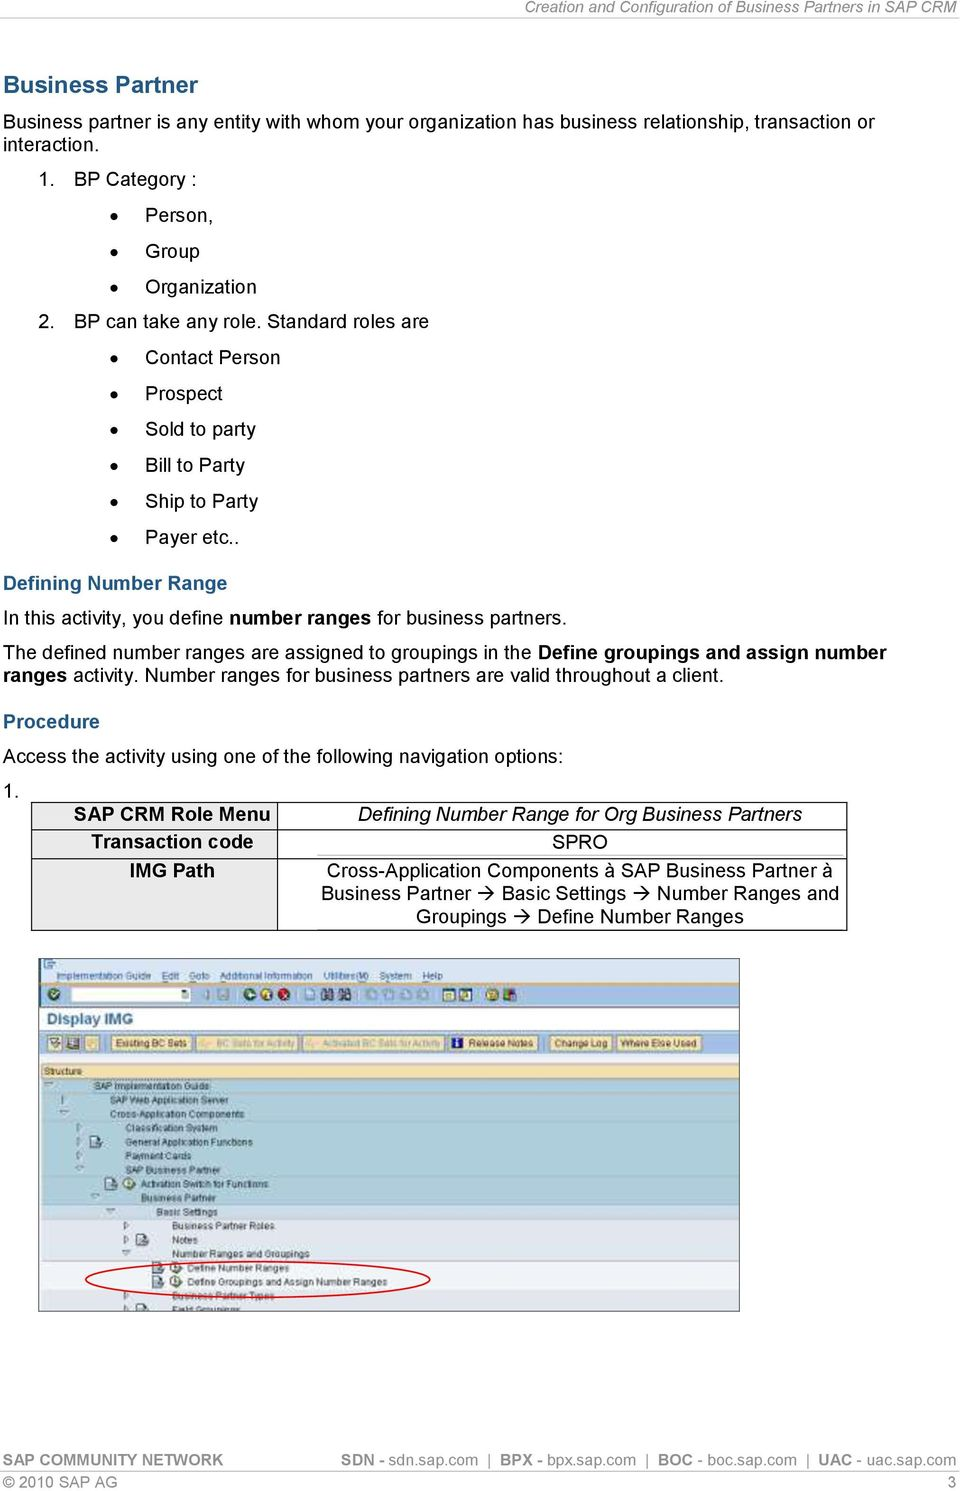 Creation and Configuration of Business Partners in SAP CRM - PDF